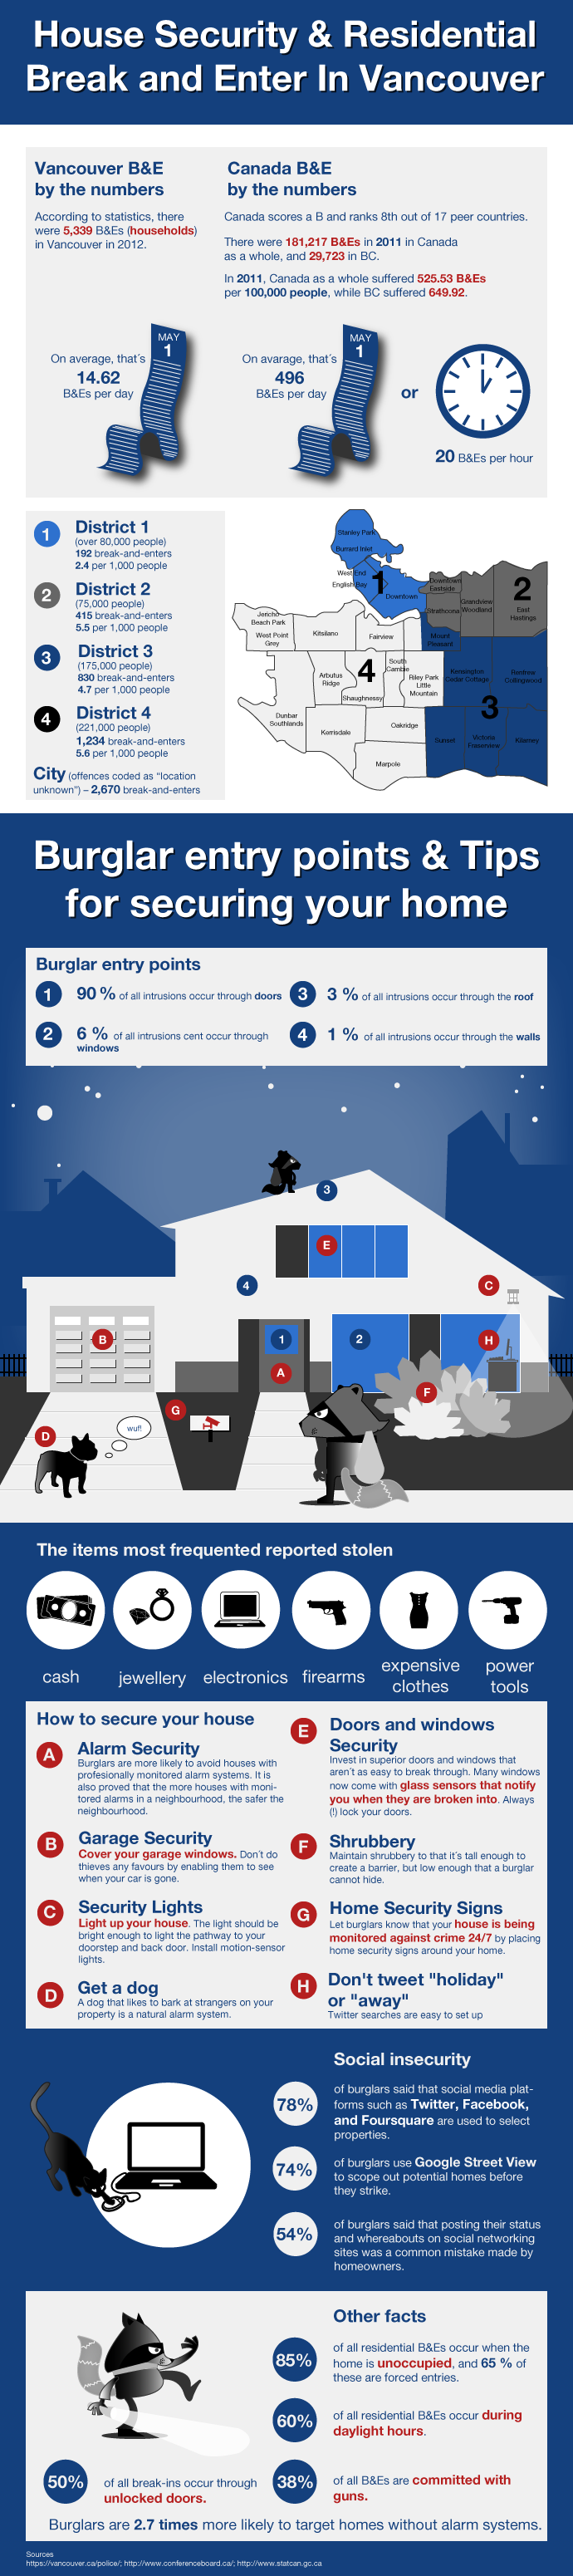 House Security Residential Break and Enter in Vancouver infographic